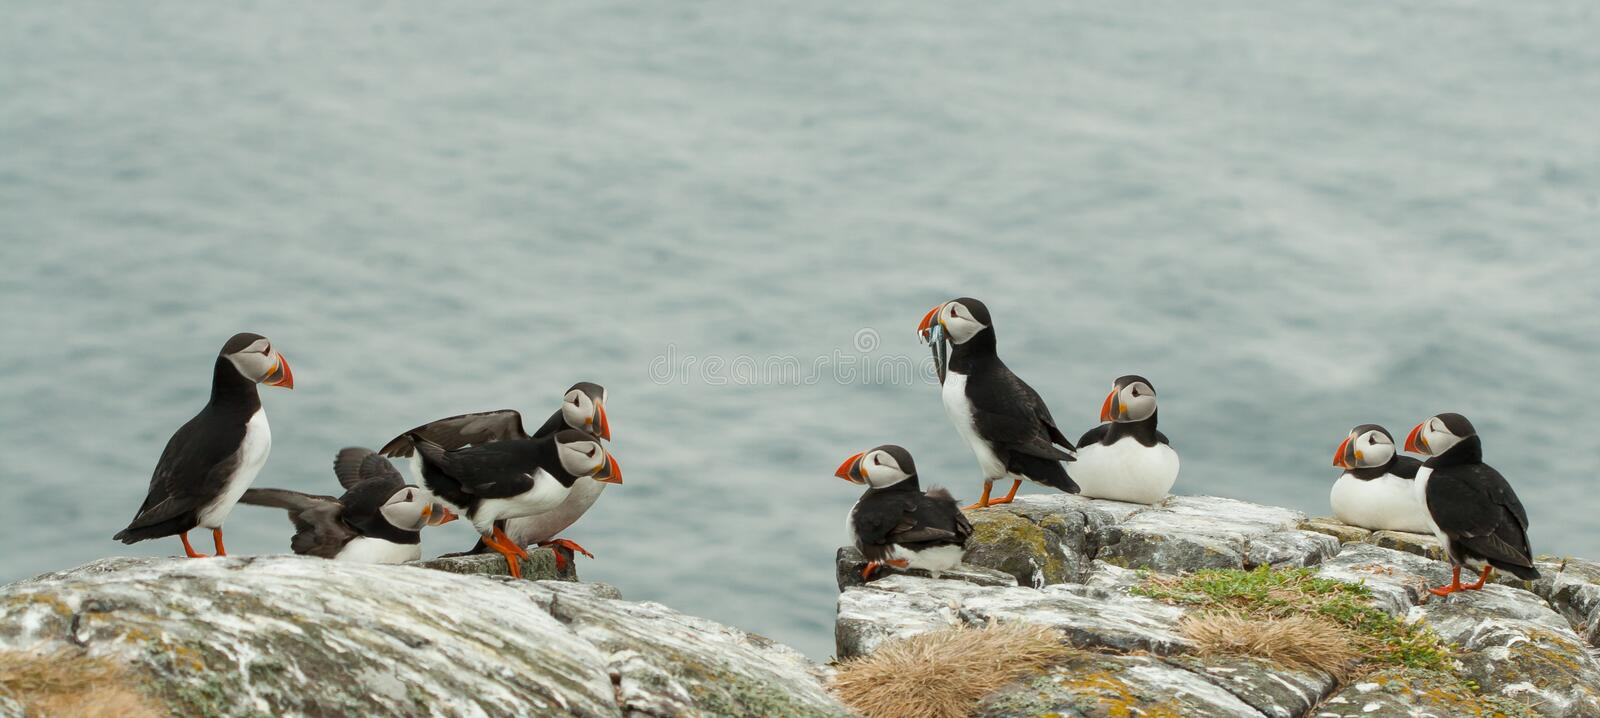 Puffins ( Fratercula arctica ) on a rock. A group of Puffins ( Fratercula arctica ) on a rock stock images